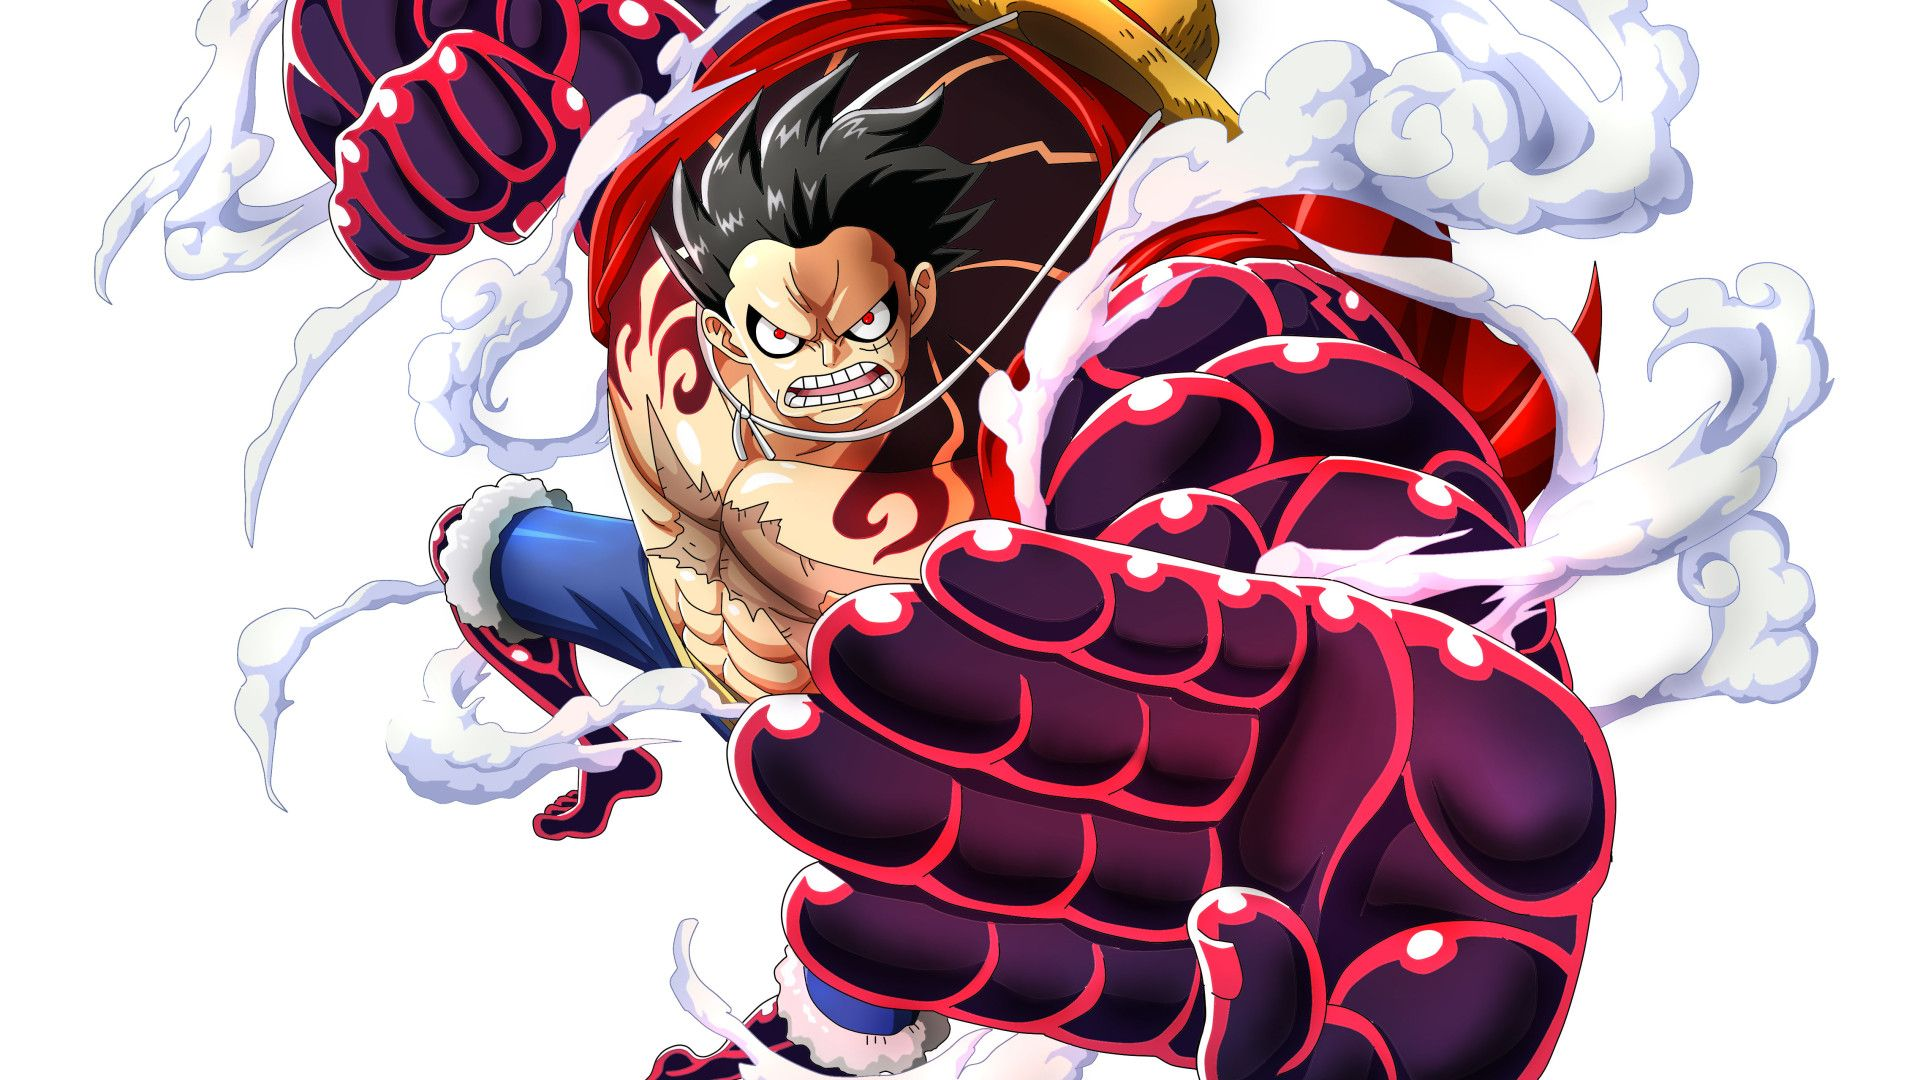 One Piece Luffy Hd Wallpaper 1920x1080 1920x1080 Monkey D Luffy One Piece Laptop Full Hd 1080p Hd One Piece Luf Luffy Gear 4 One Piece Gear 4 One Piece Luffy